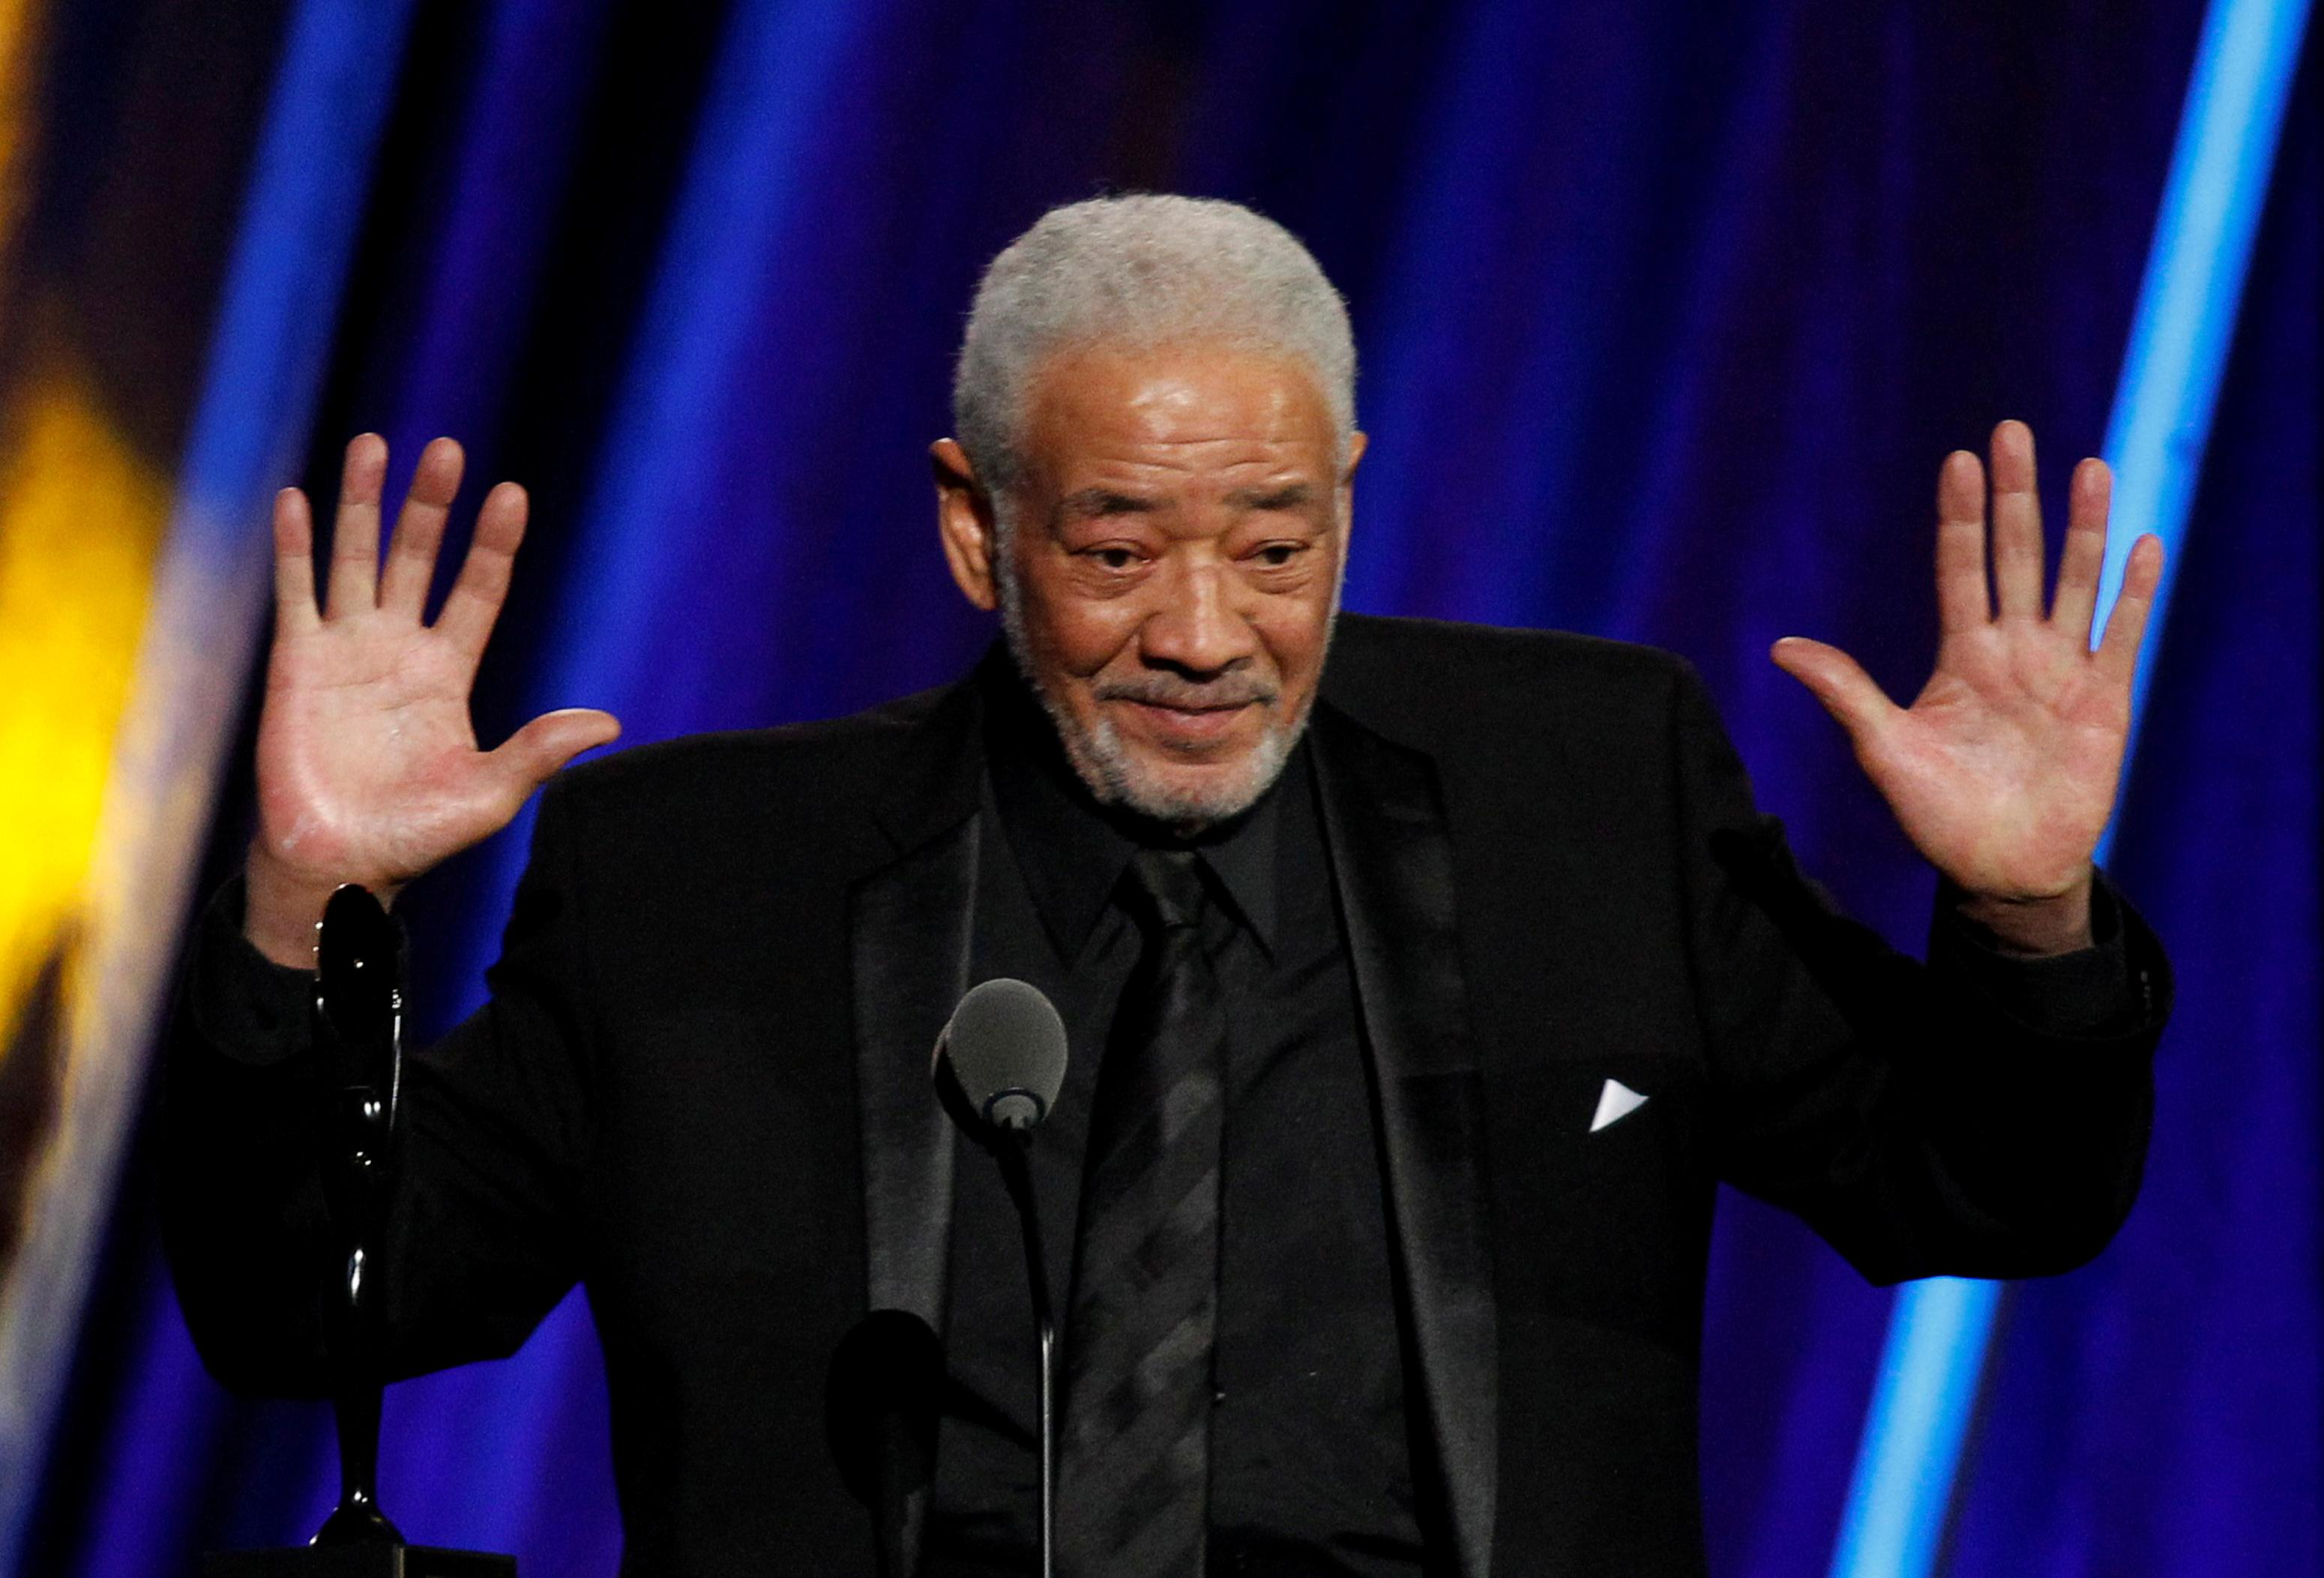 Bill Withers speaks during his 2015 induction of Rock and Roll Hall of Fame in Cleveland, Ohio. Photo: Reuters